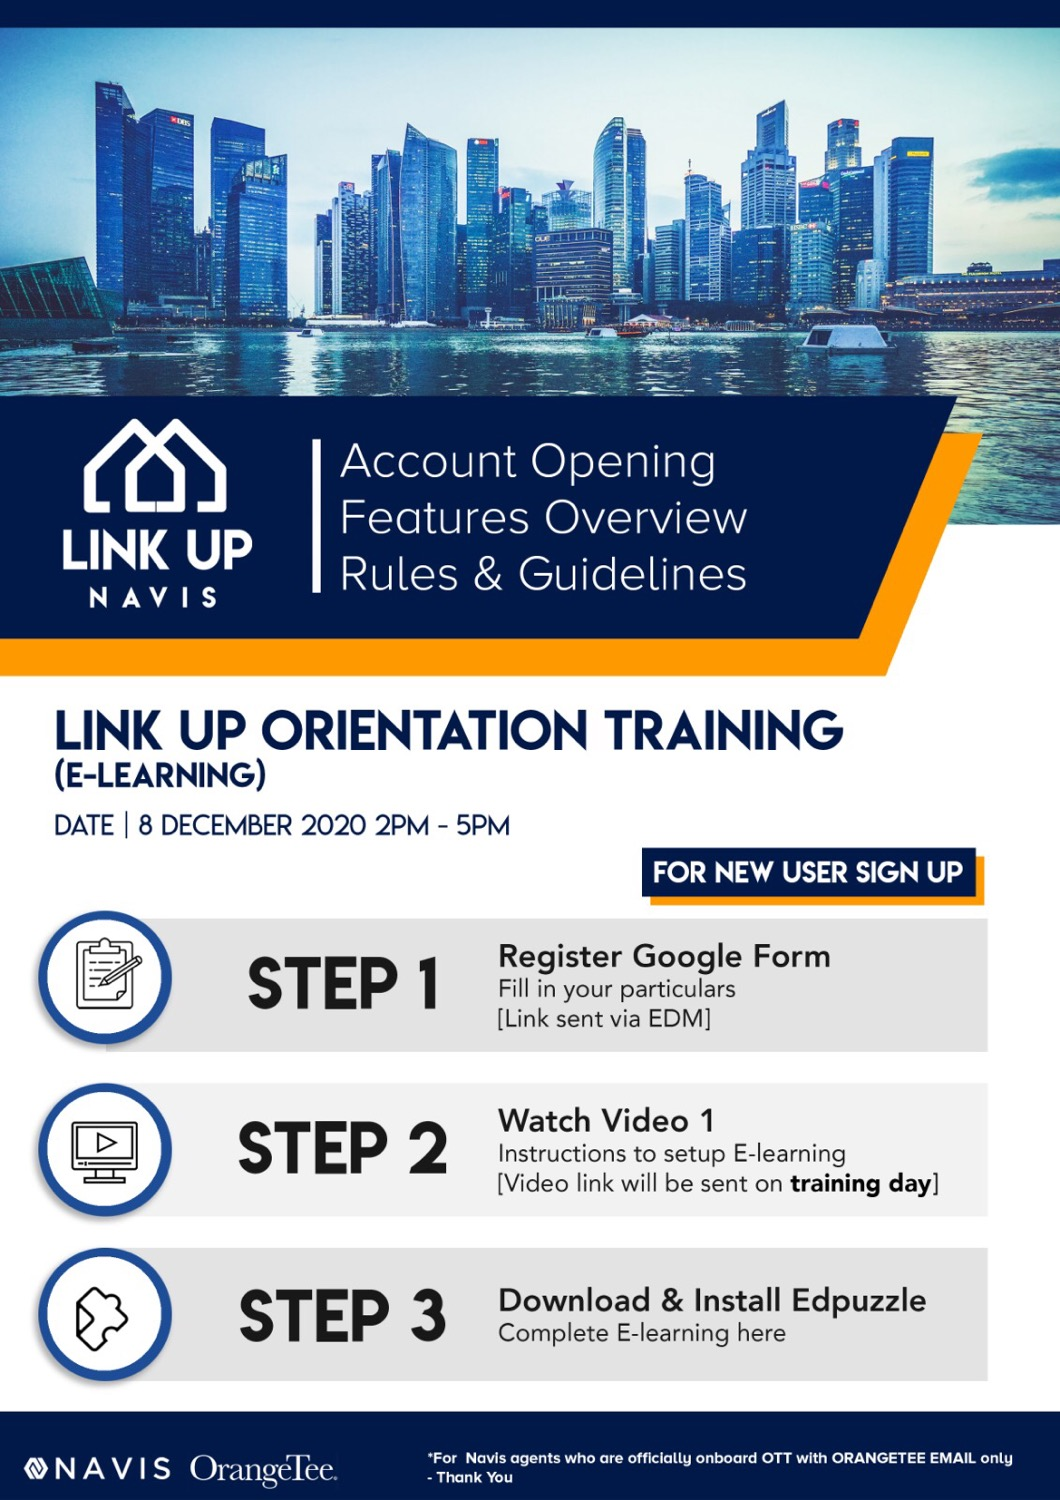 Link Up Mobile App Orientation Training